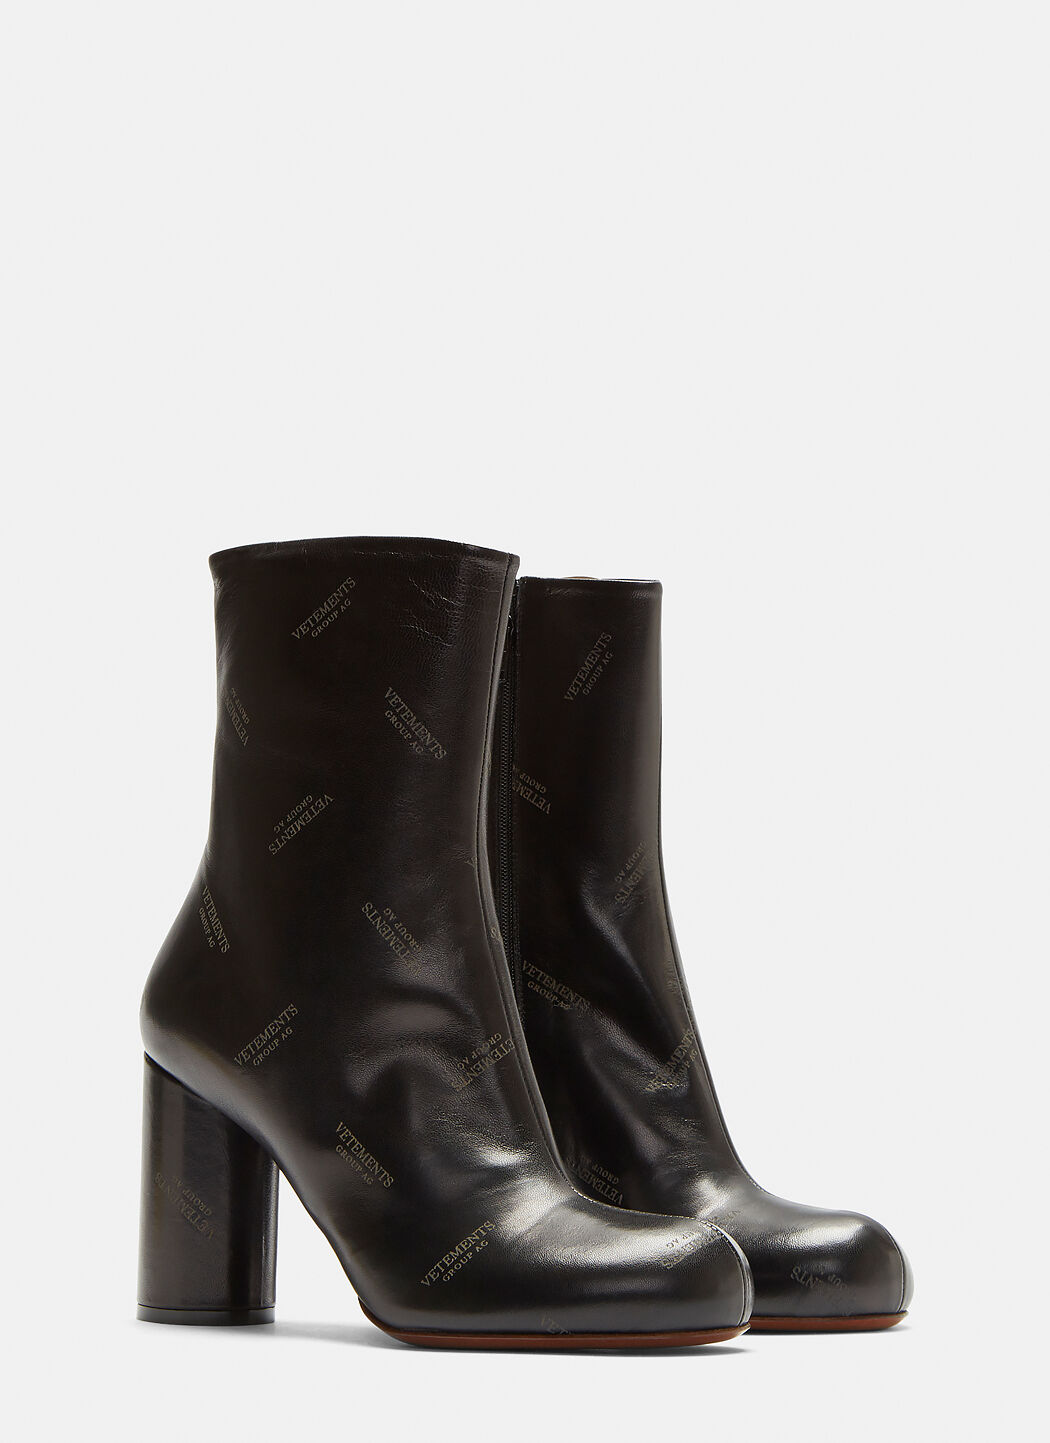 Vetements Patent Leather Ankle Boots Gr. EU 39 i9eLfb